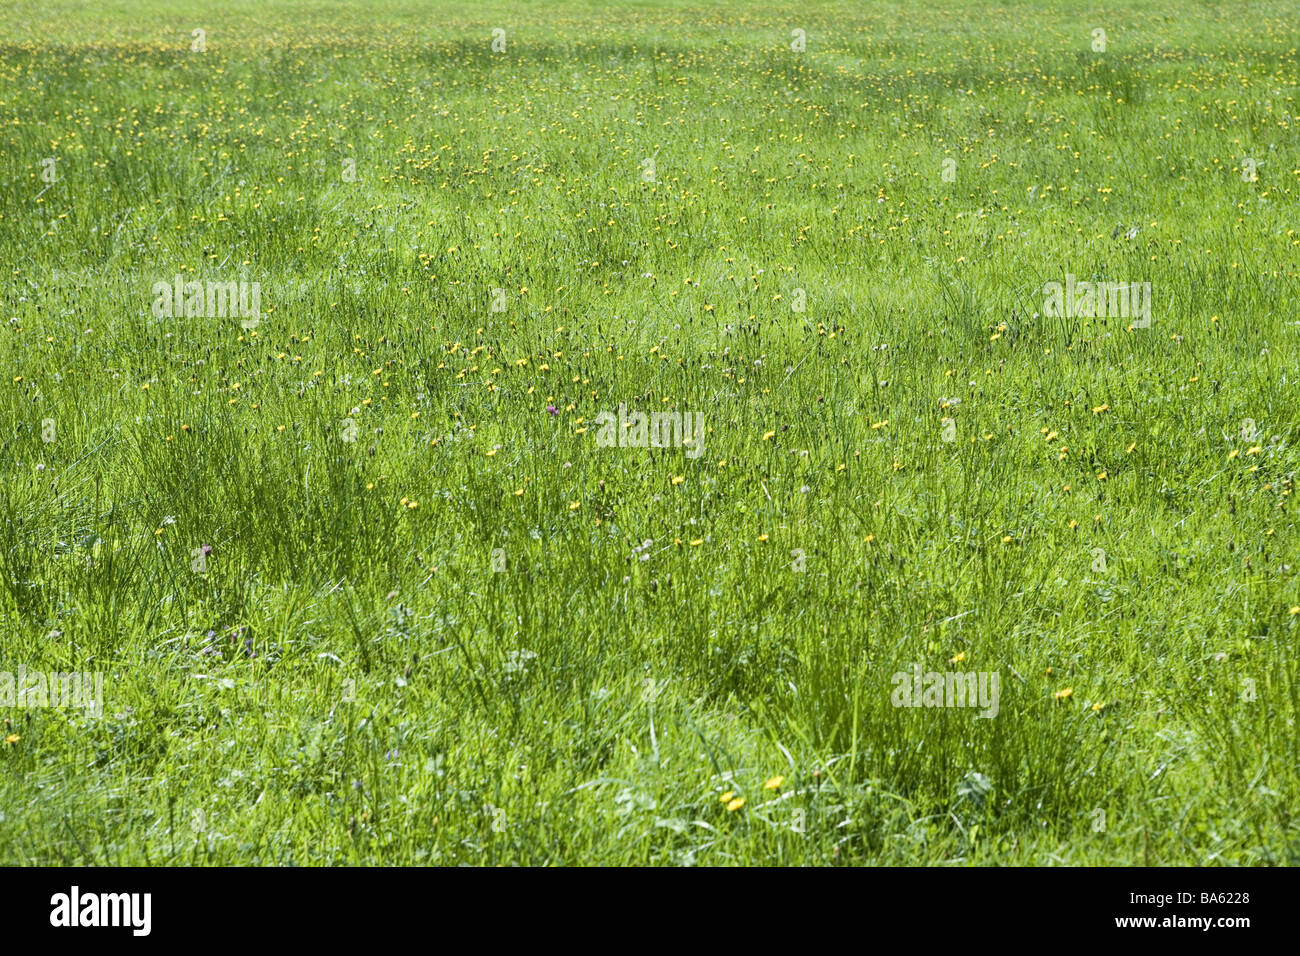 beddingmeadow nature grassland meadow grass grassgreen flowers  - beddingmeadow nature grassland meadow grass grassgreen flowersmeadowflowers empty nobody